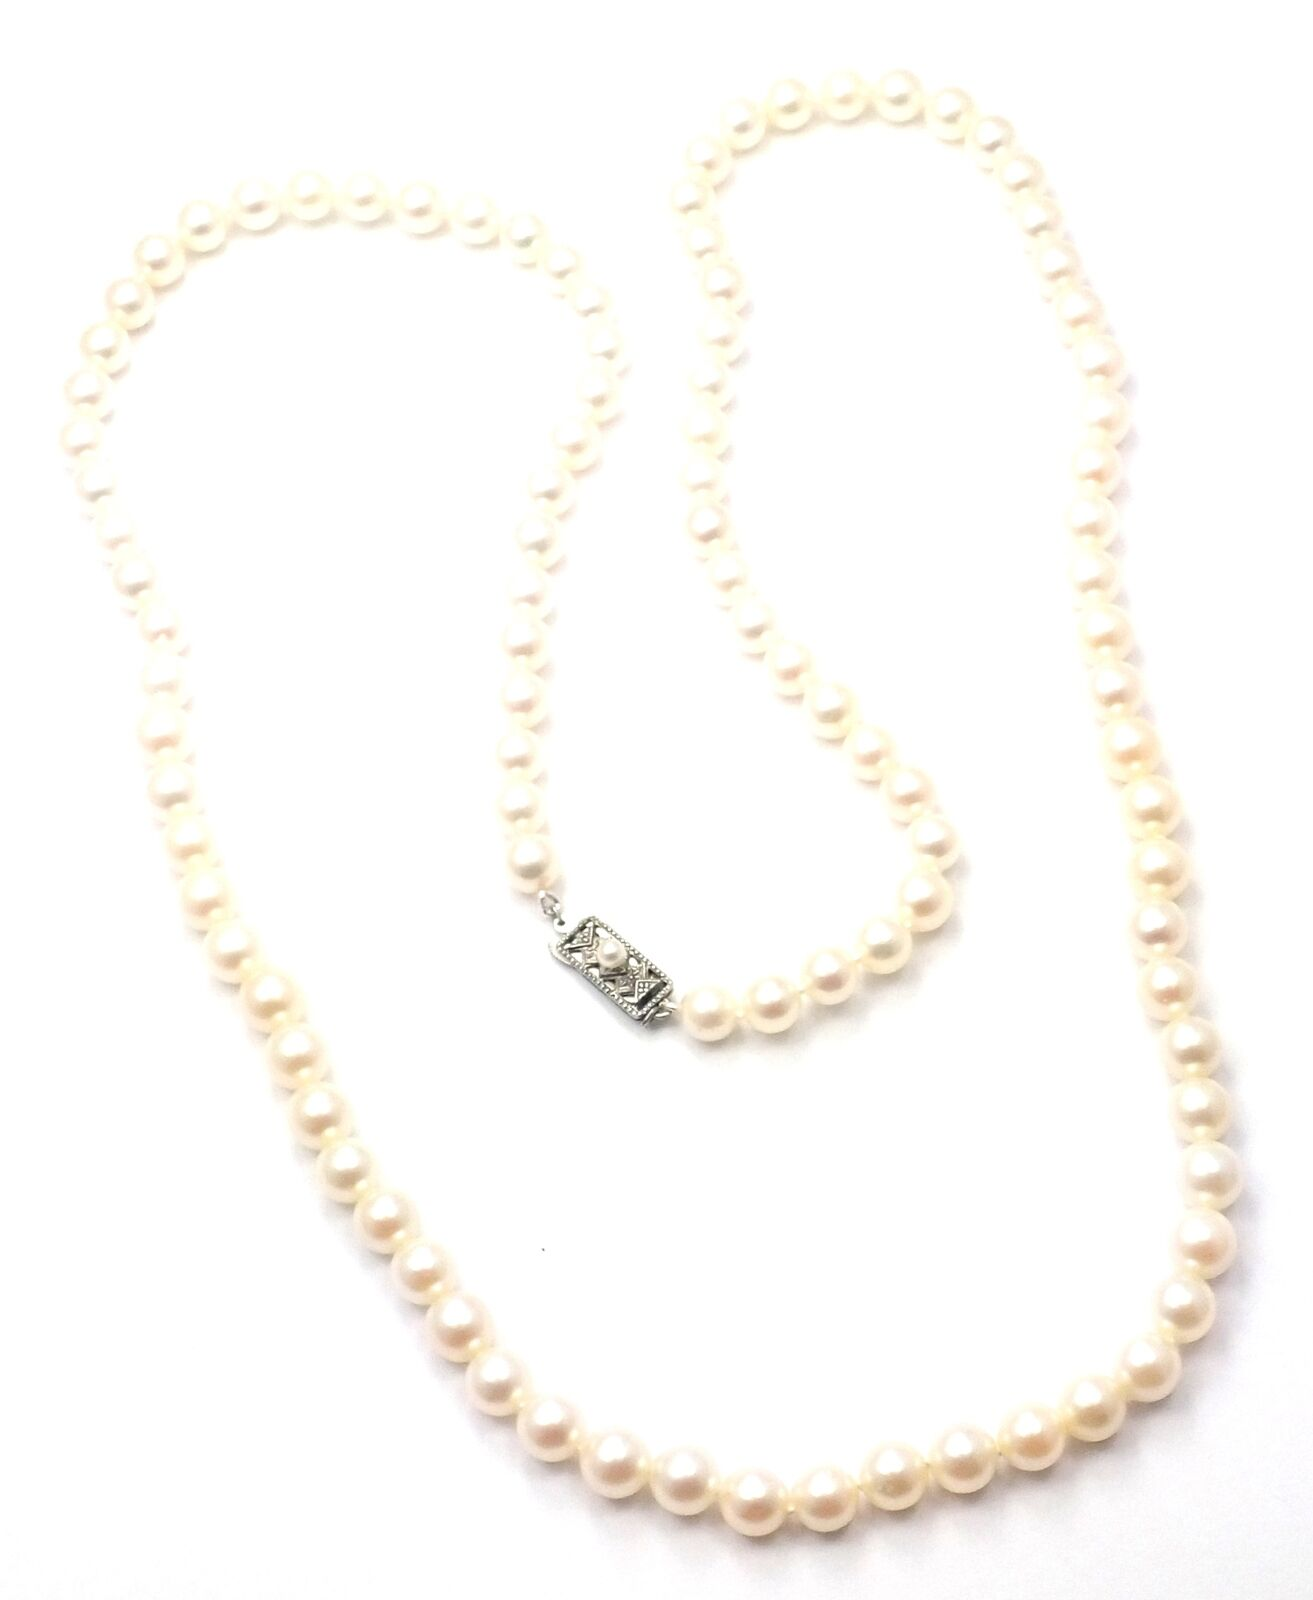 "Authentic! Mikimoto Sterling Silver 6.5mm to 7.25mm 30"" Long Pearl Necklace"